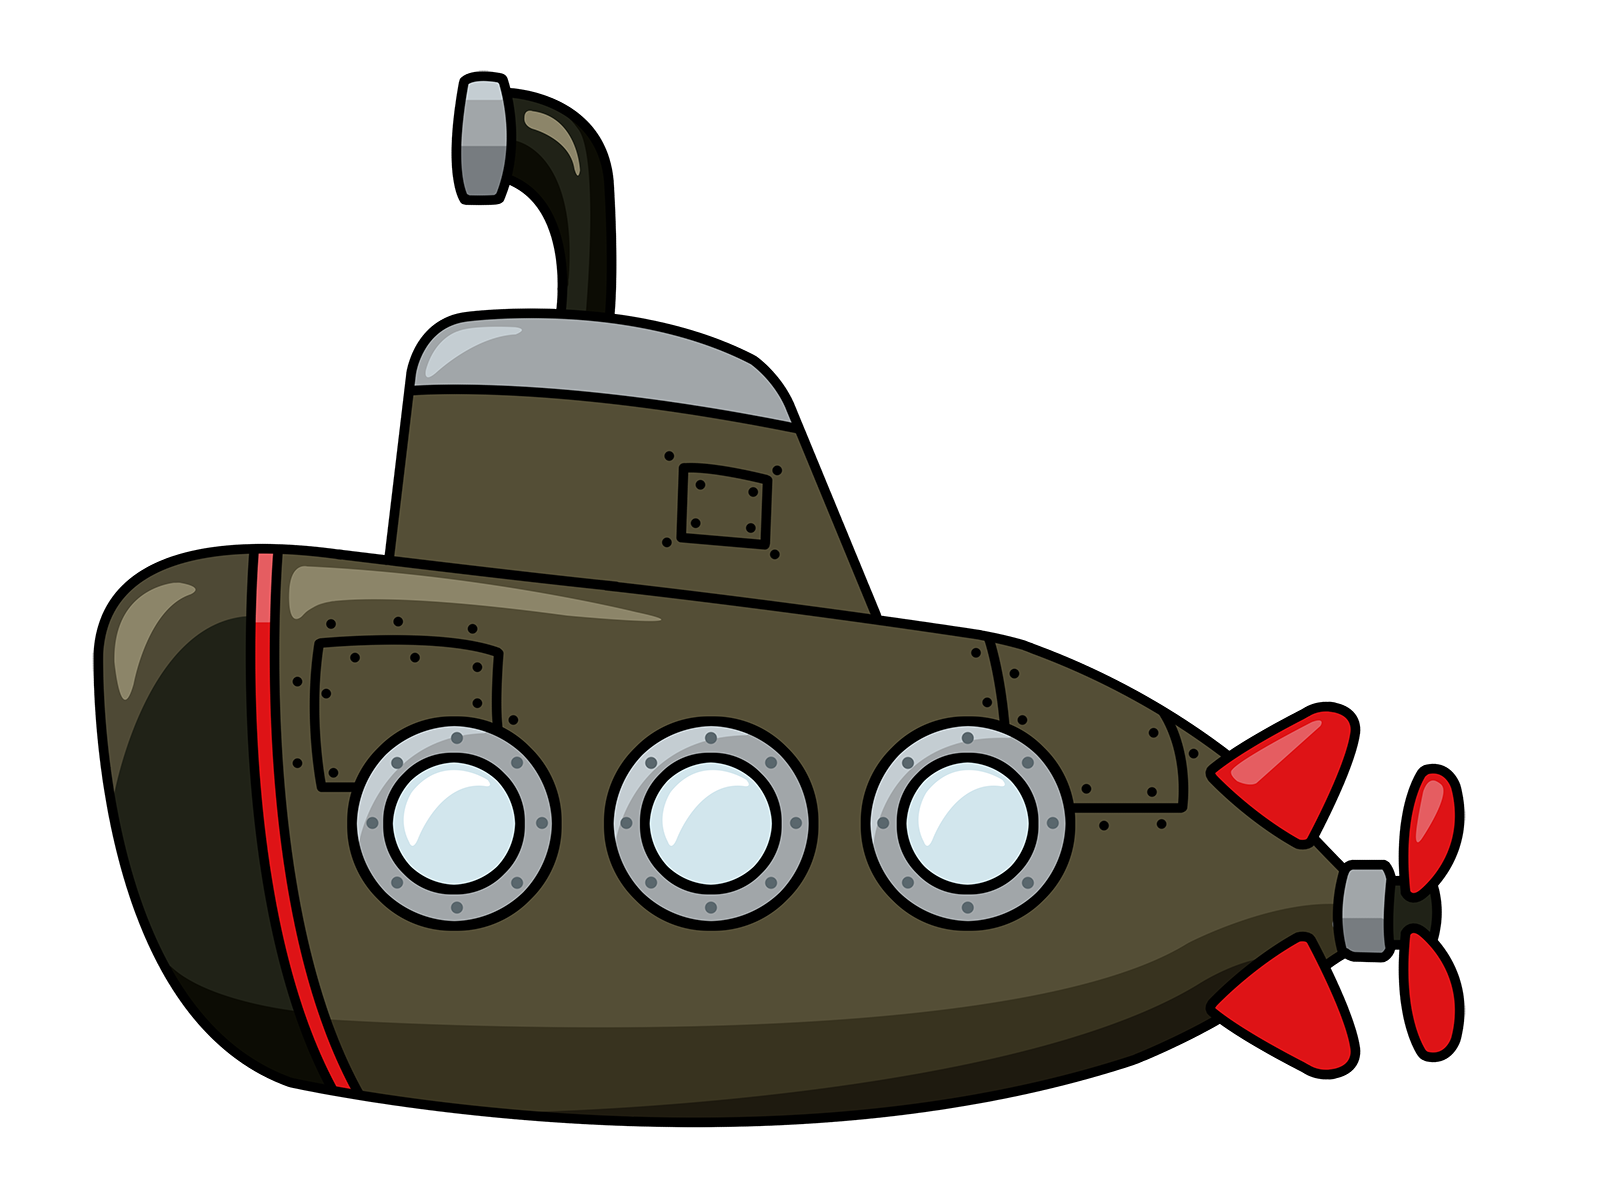 Submarine free download best. Scooter clipart animated